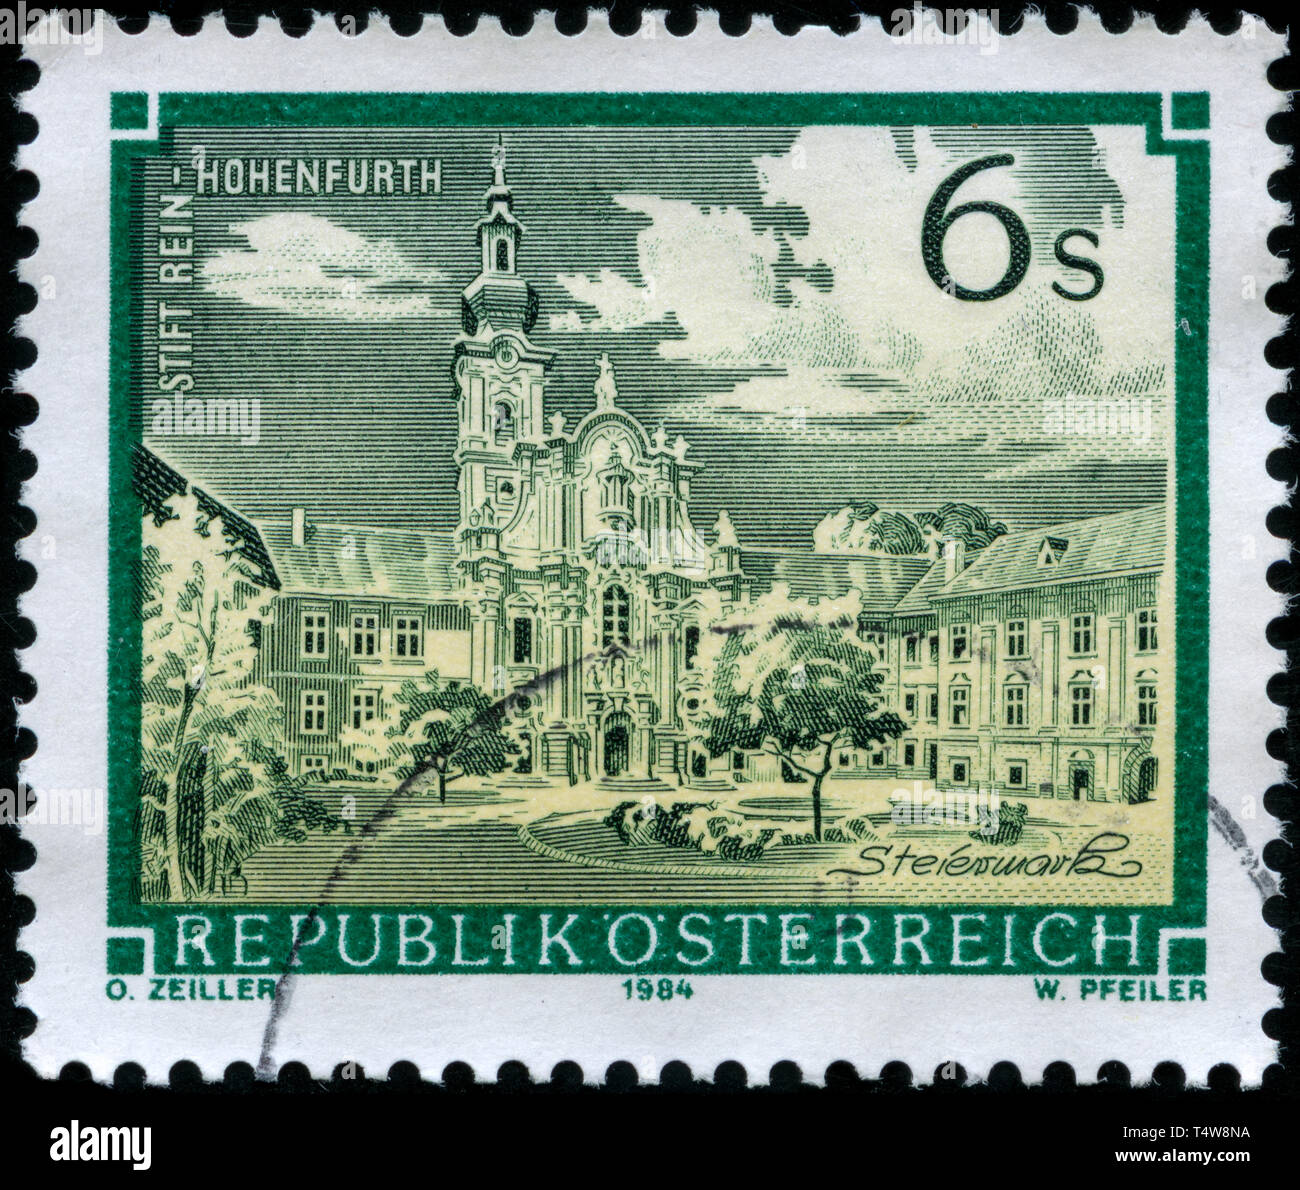 Postage stamp from Austria in the Monasteries and Abbeys series issued in 1984 - Stock Image